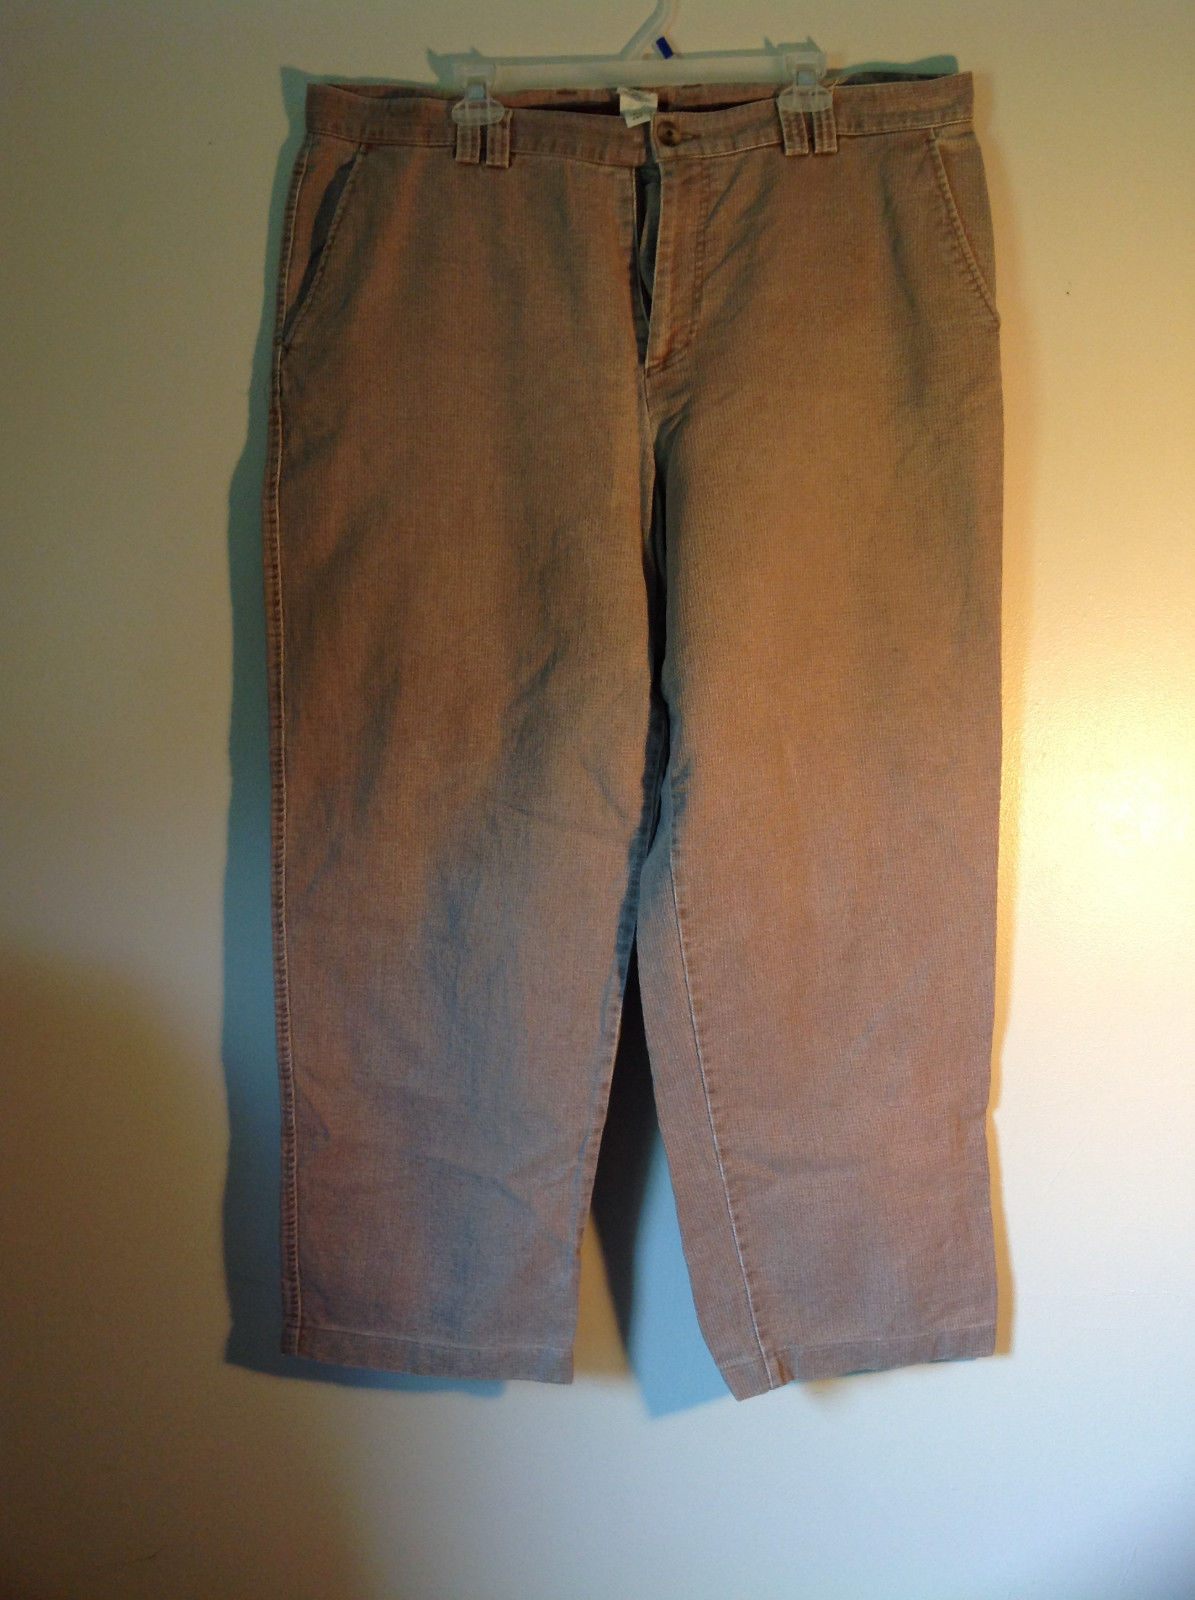 Tan Size 40 Pants The Territory Ahead Front Back Pockets Zipper Button Closure